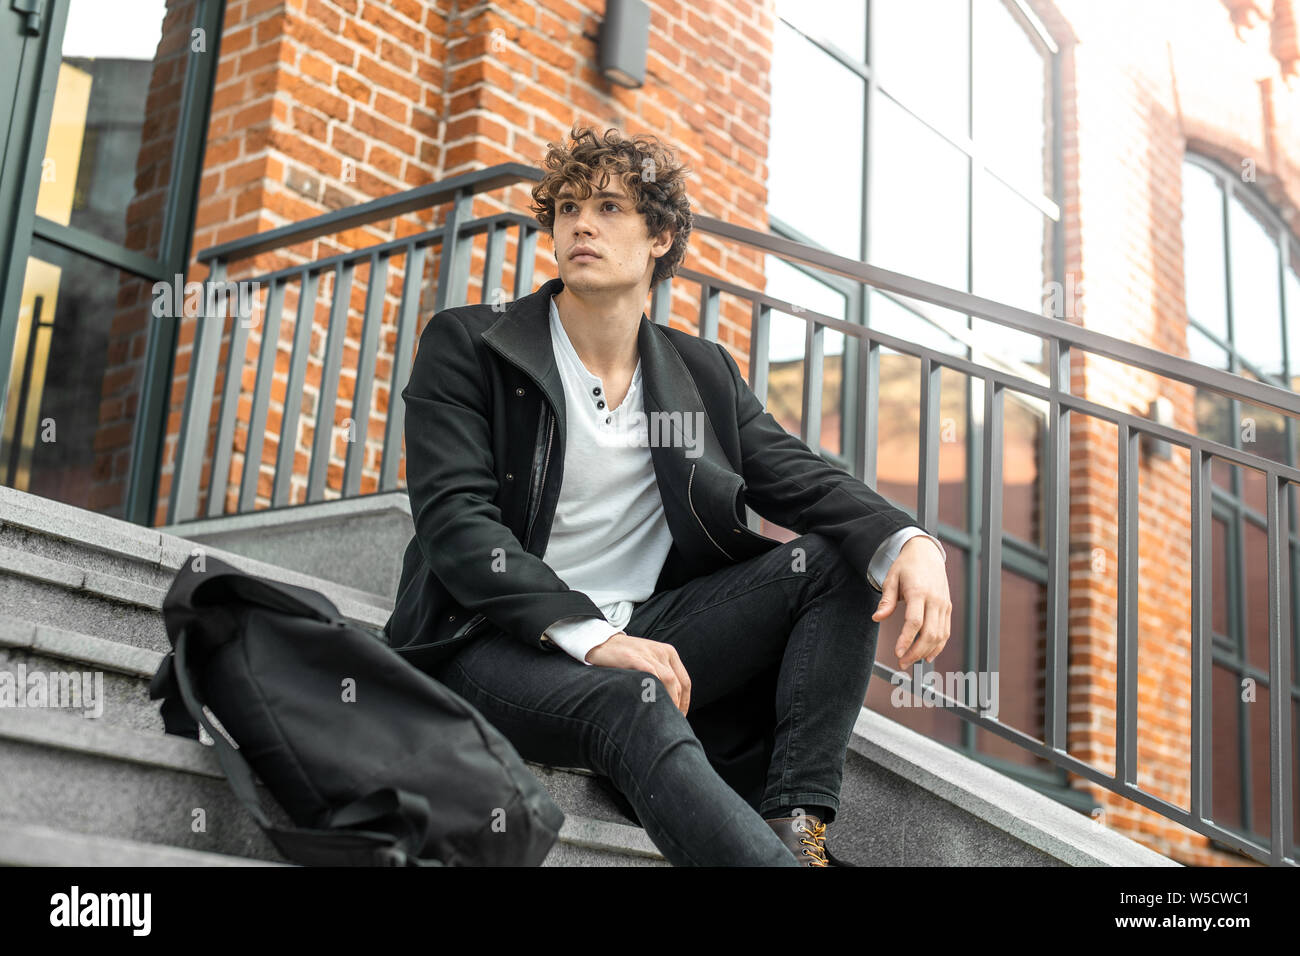 Young attractive pensive man sitting on concrete steps of modern red bricked building. Stock Photo